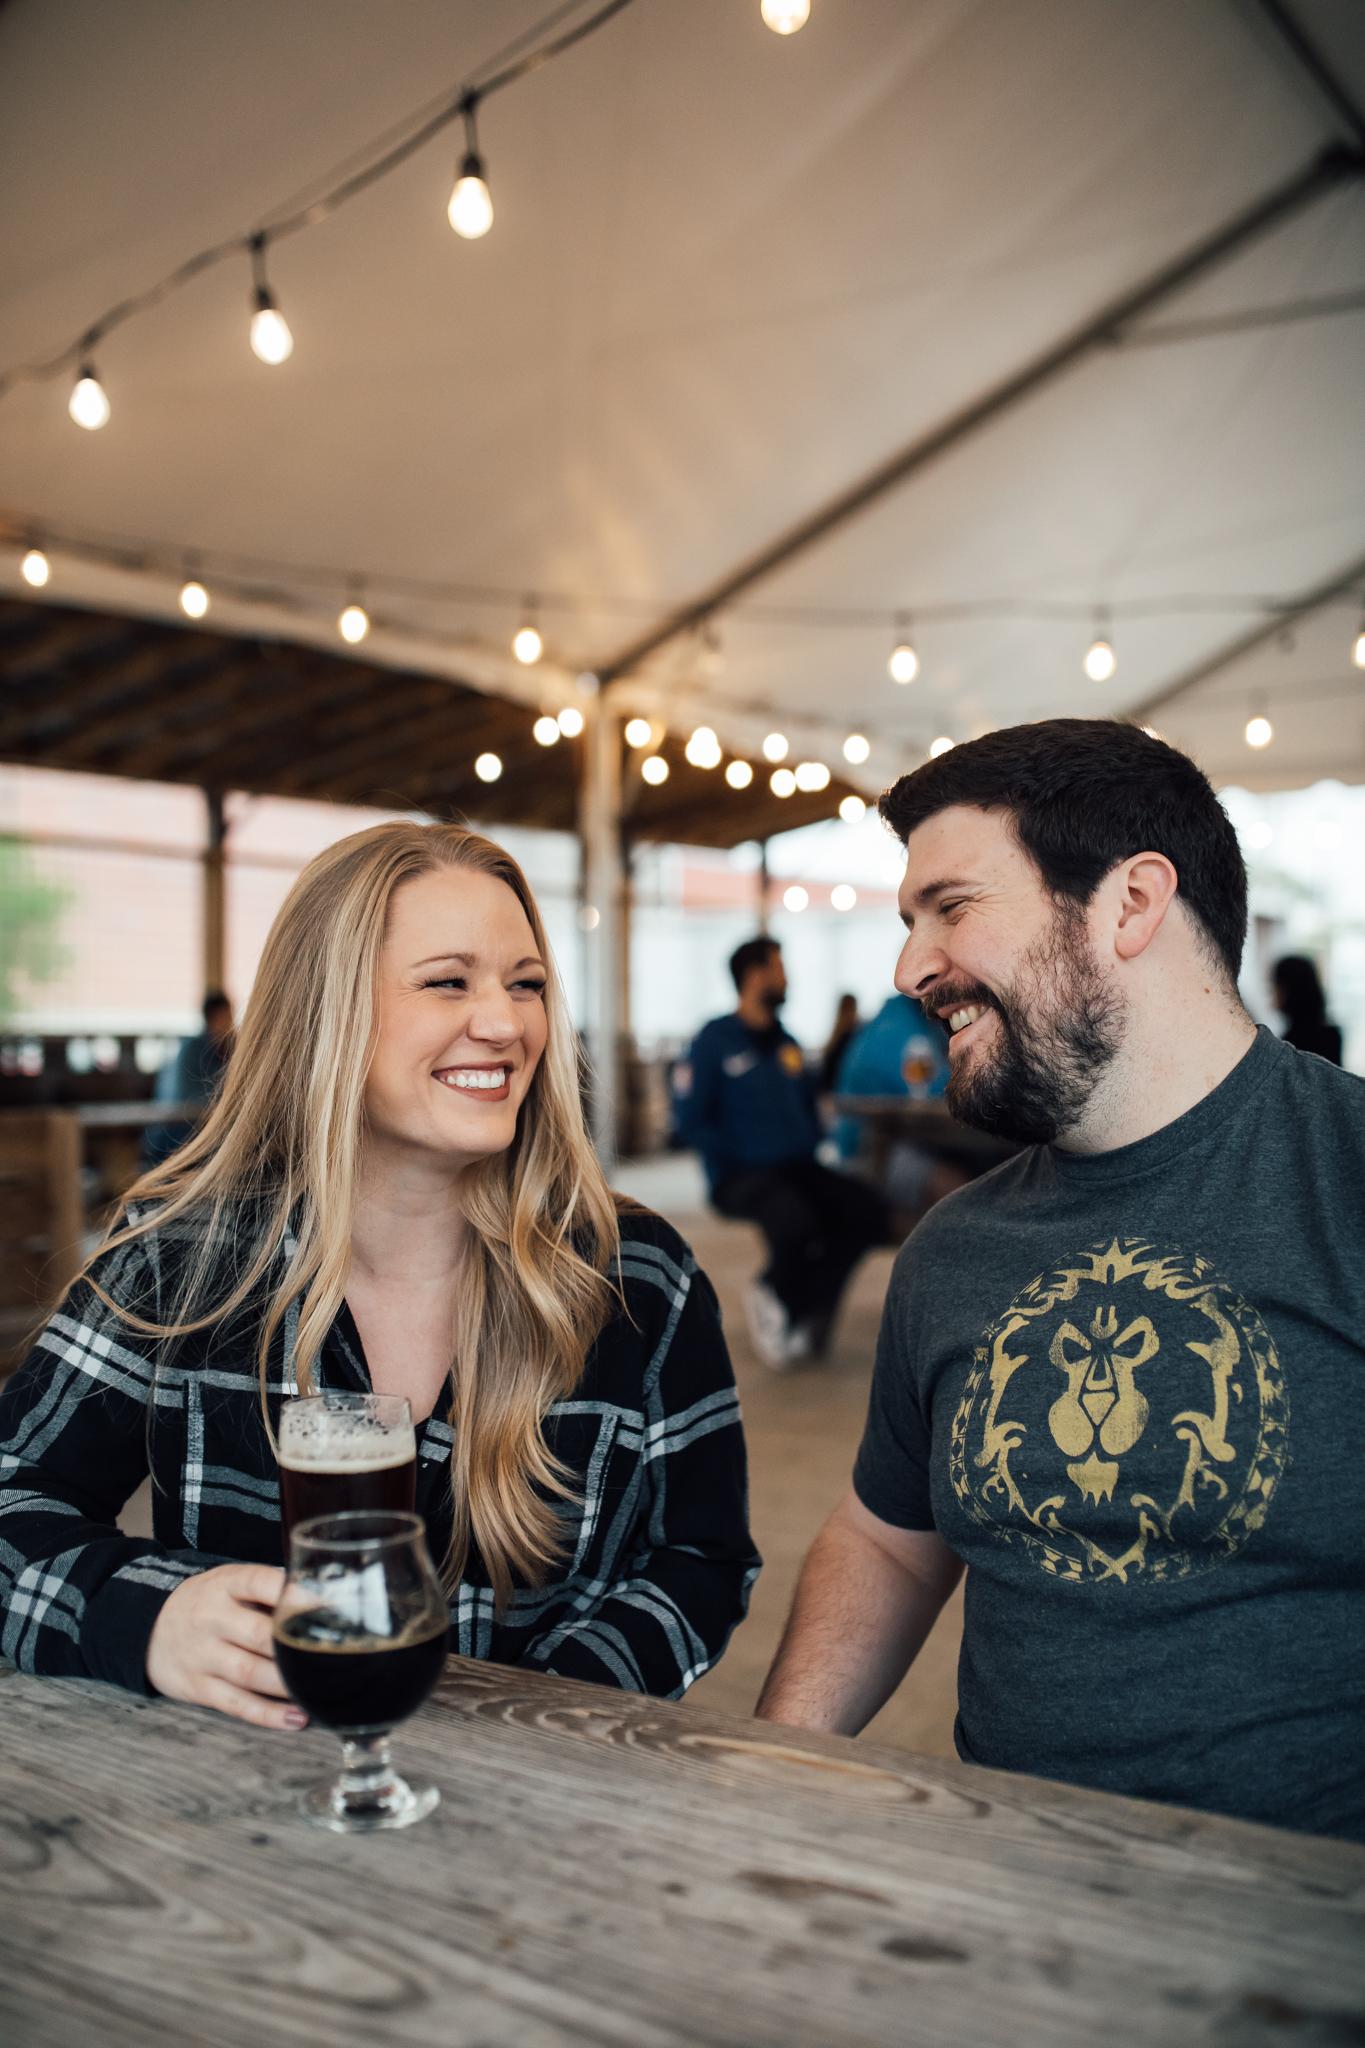 wiseacre-brewing-wedding-photographer-the-warmth-around-you-cassie-cook-photography (5 of 64).jpg